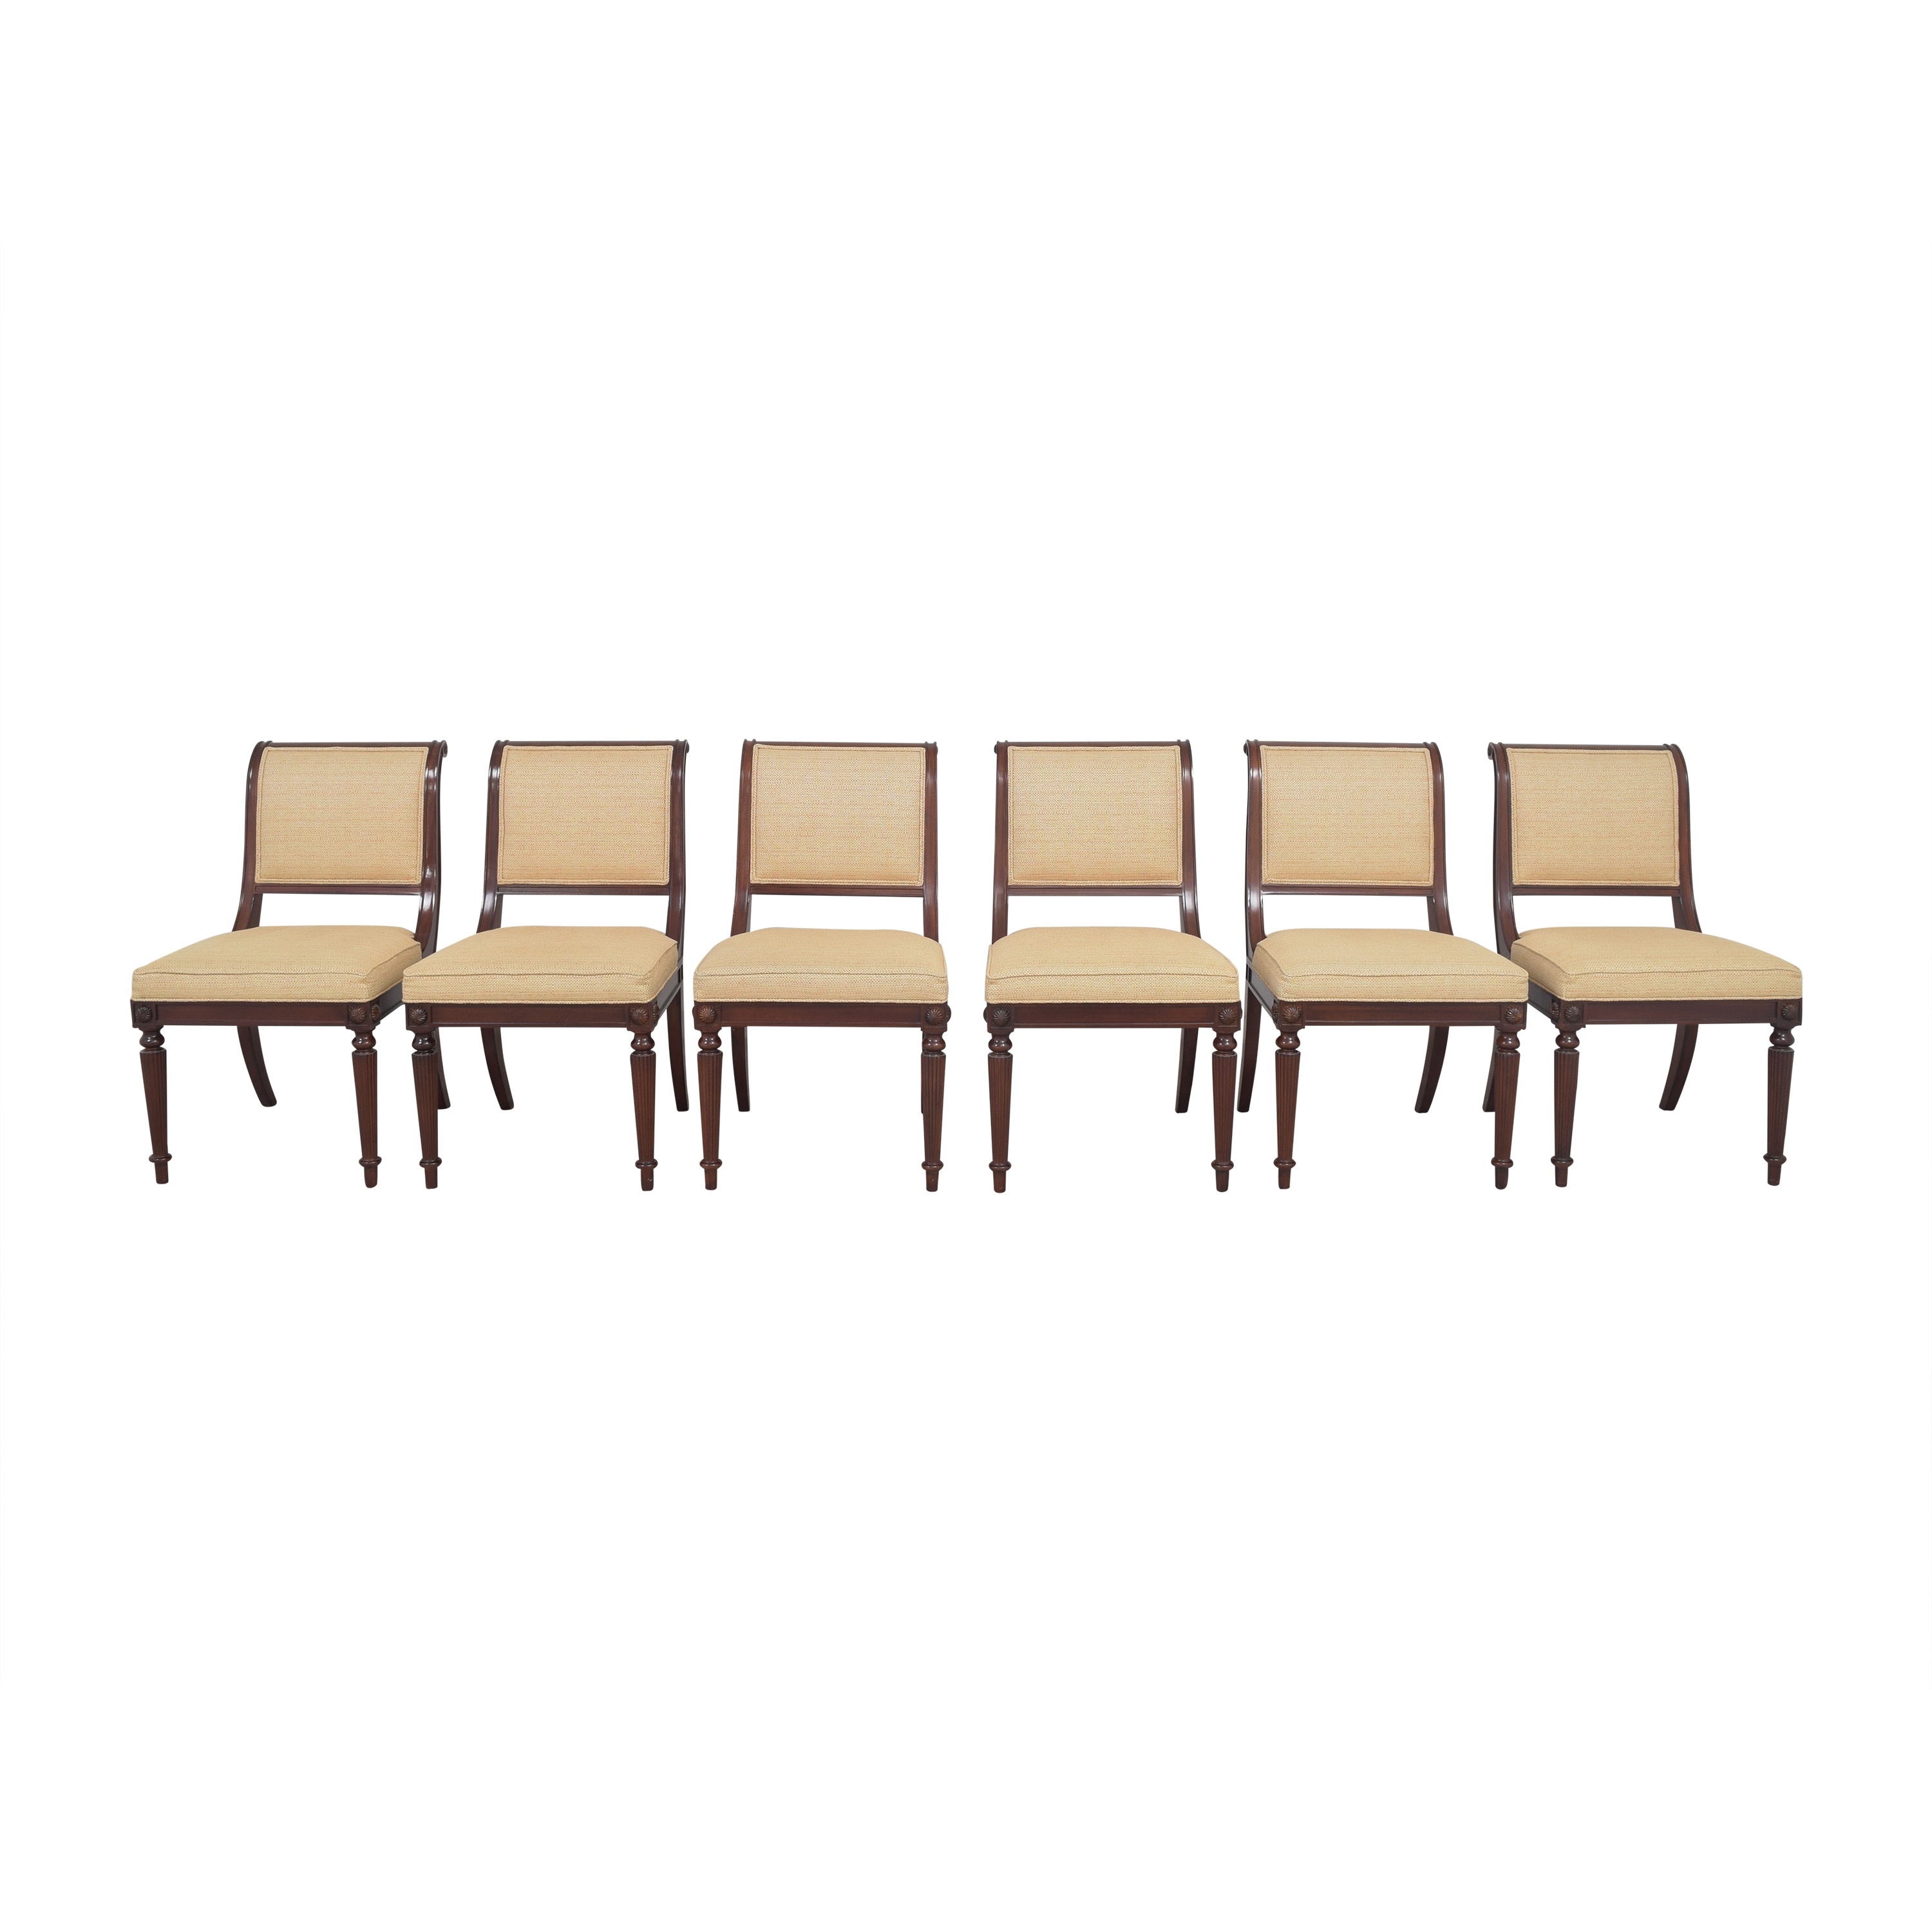 Councill Councill Simon Dining Side Chairs ct